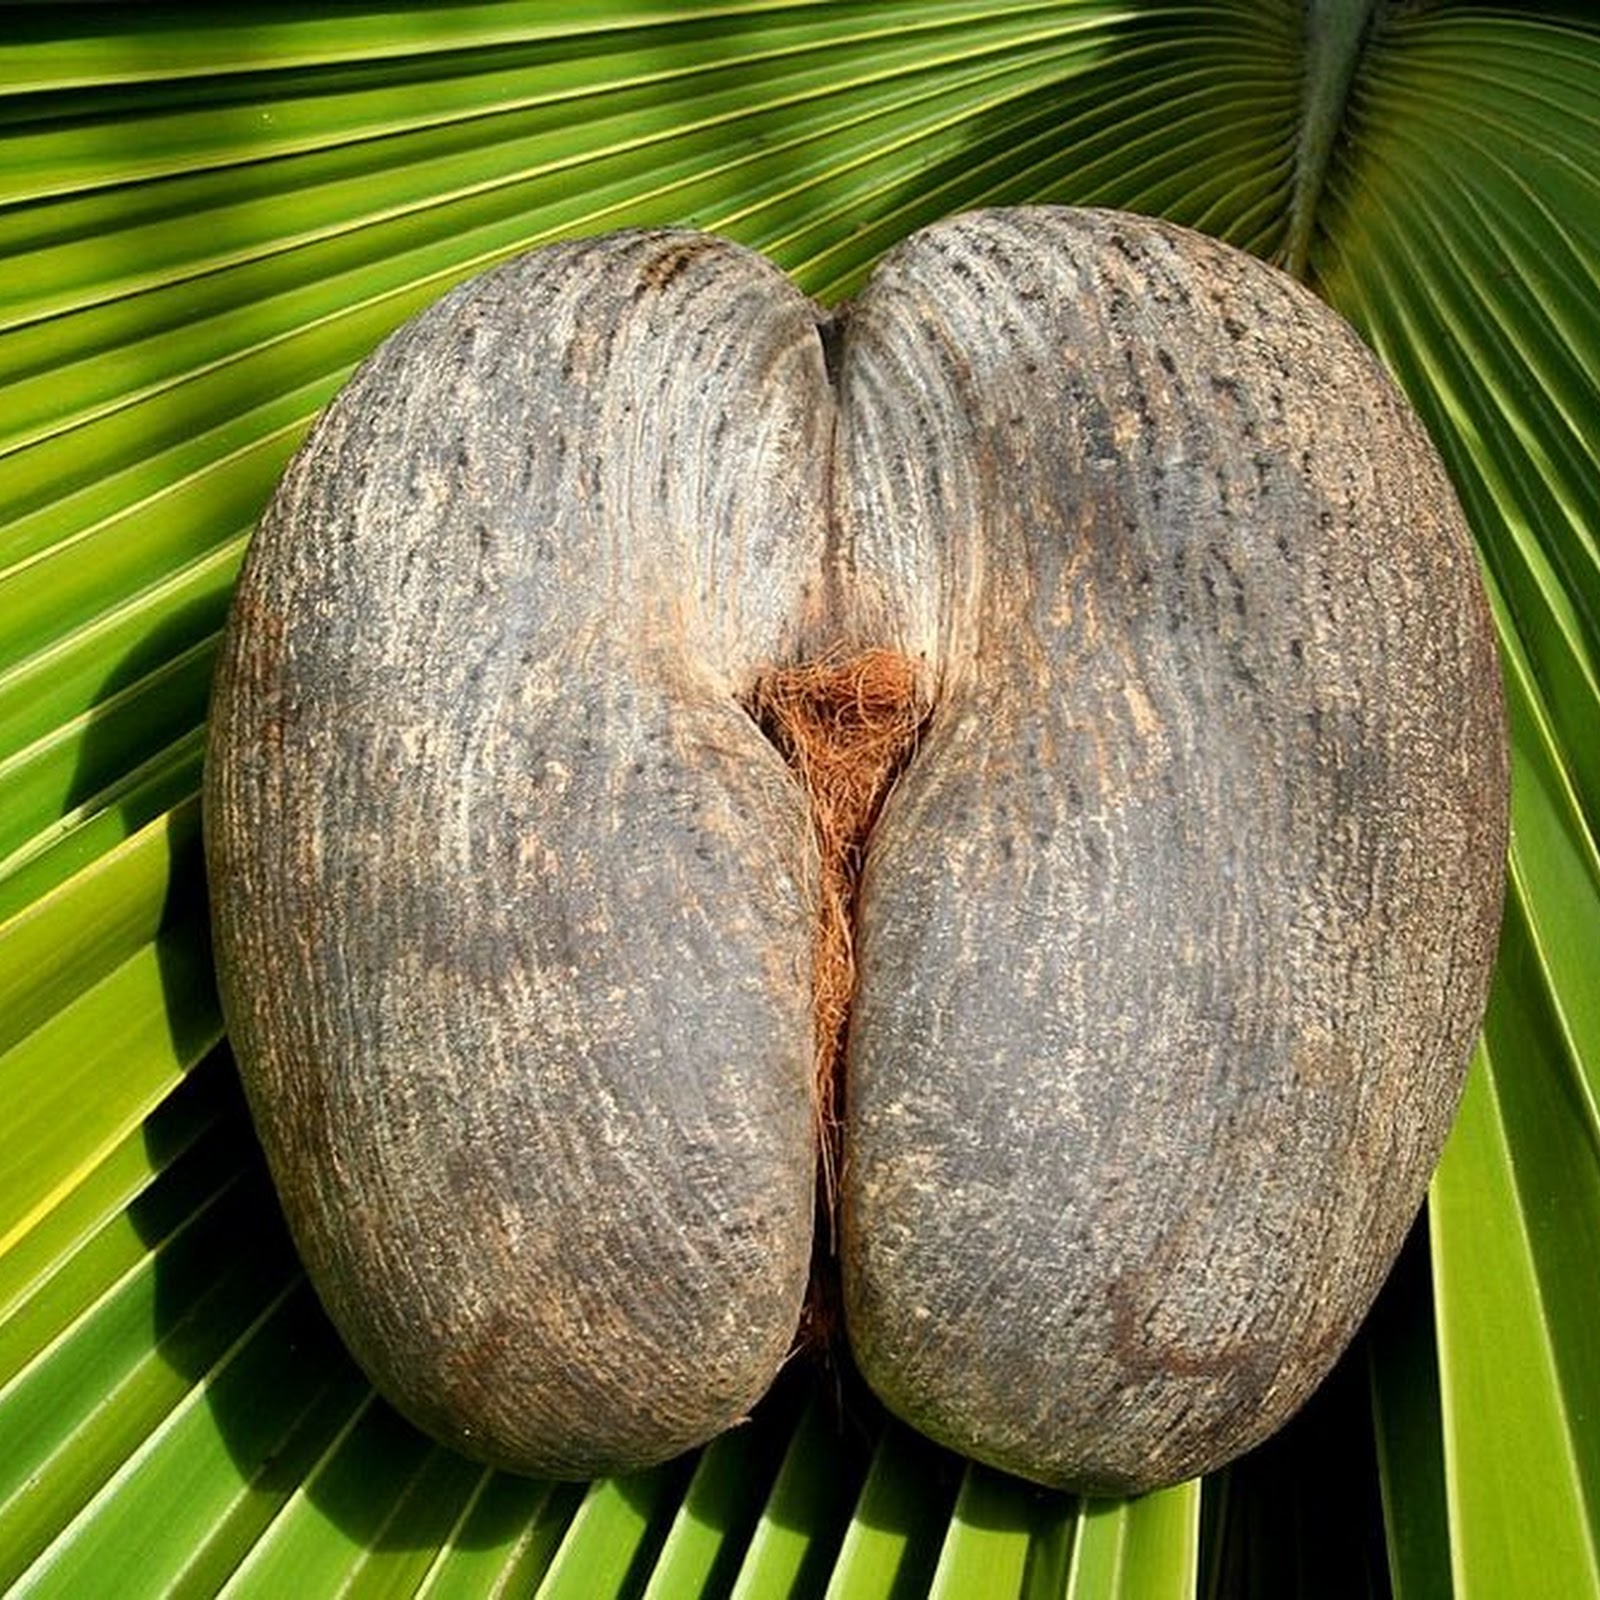 Coco de mer: The Forbidden Fruit